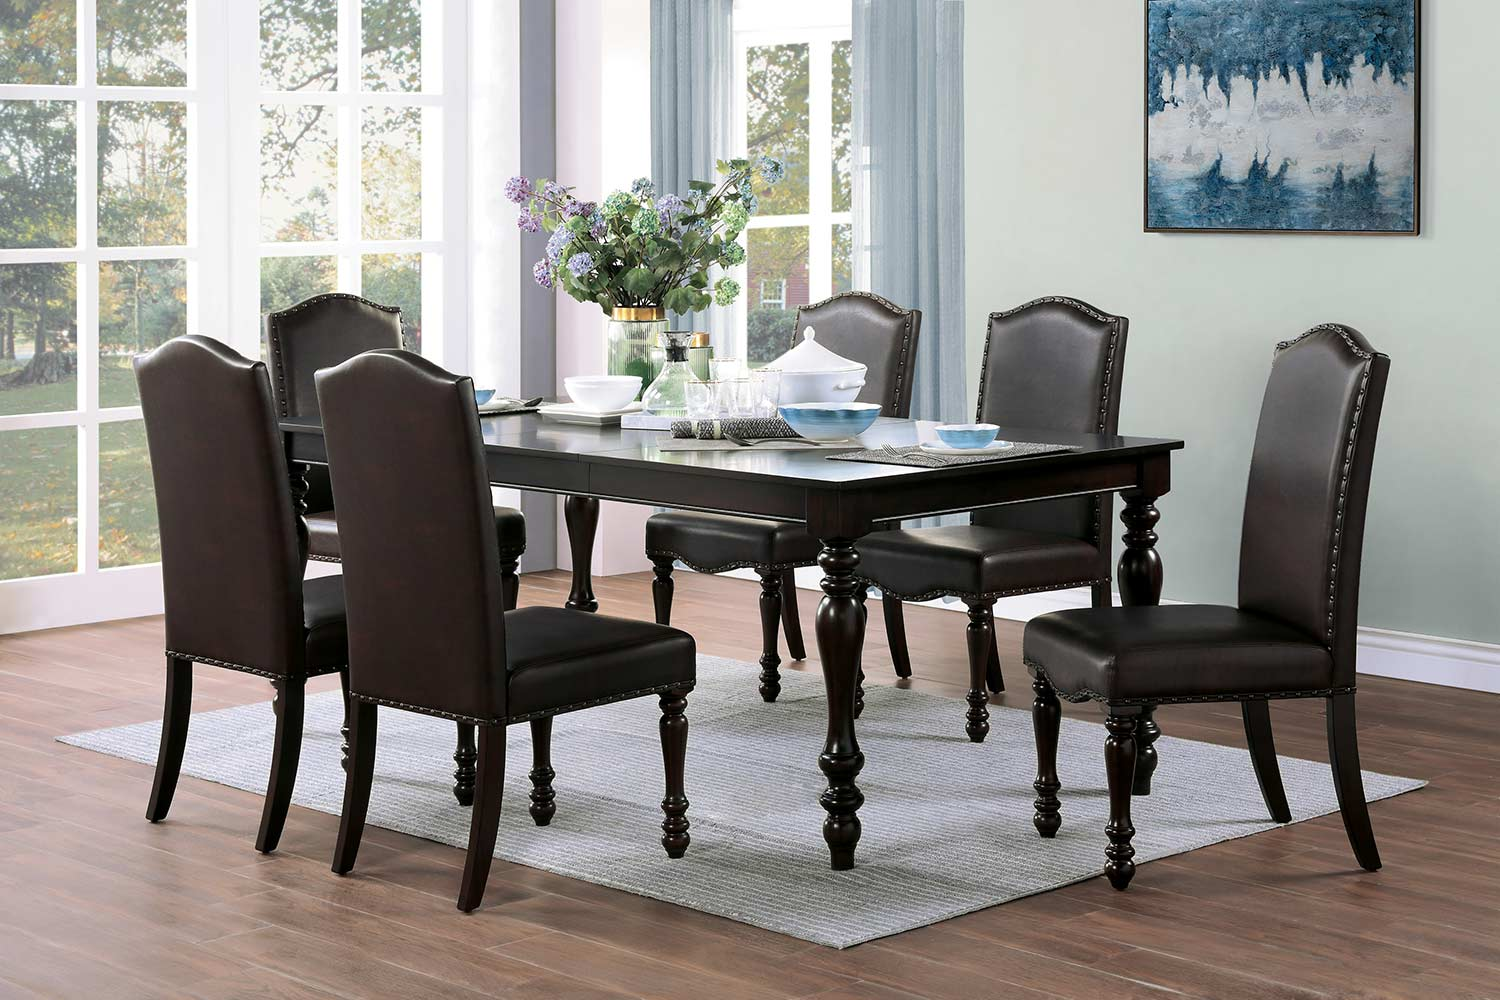 Homelegance Hargreave Dining Set - Cherry